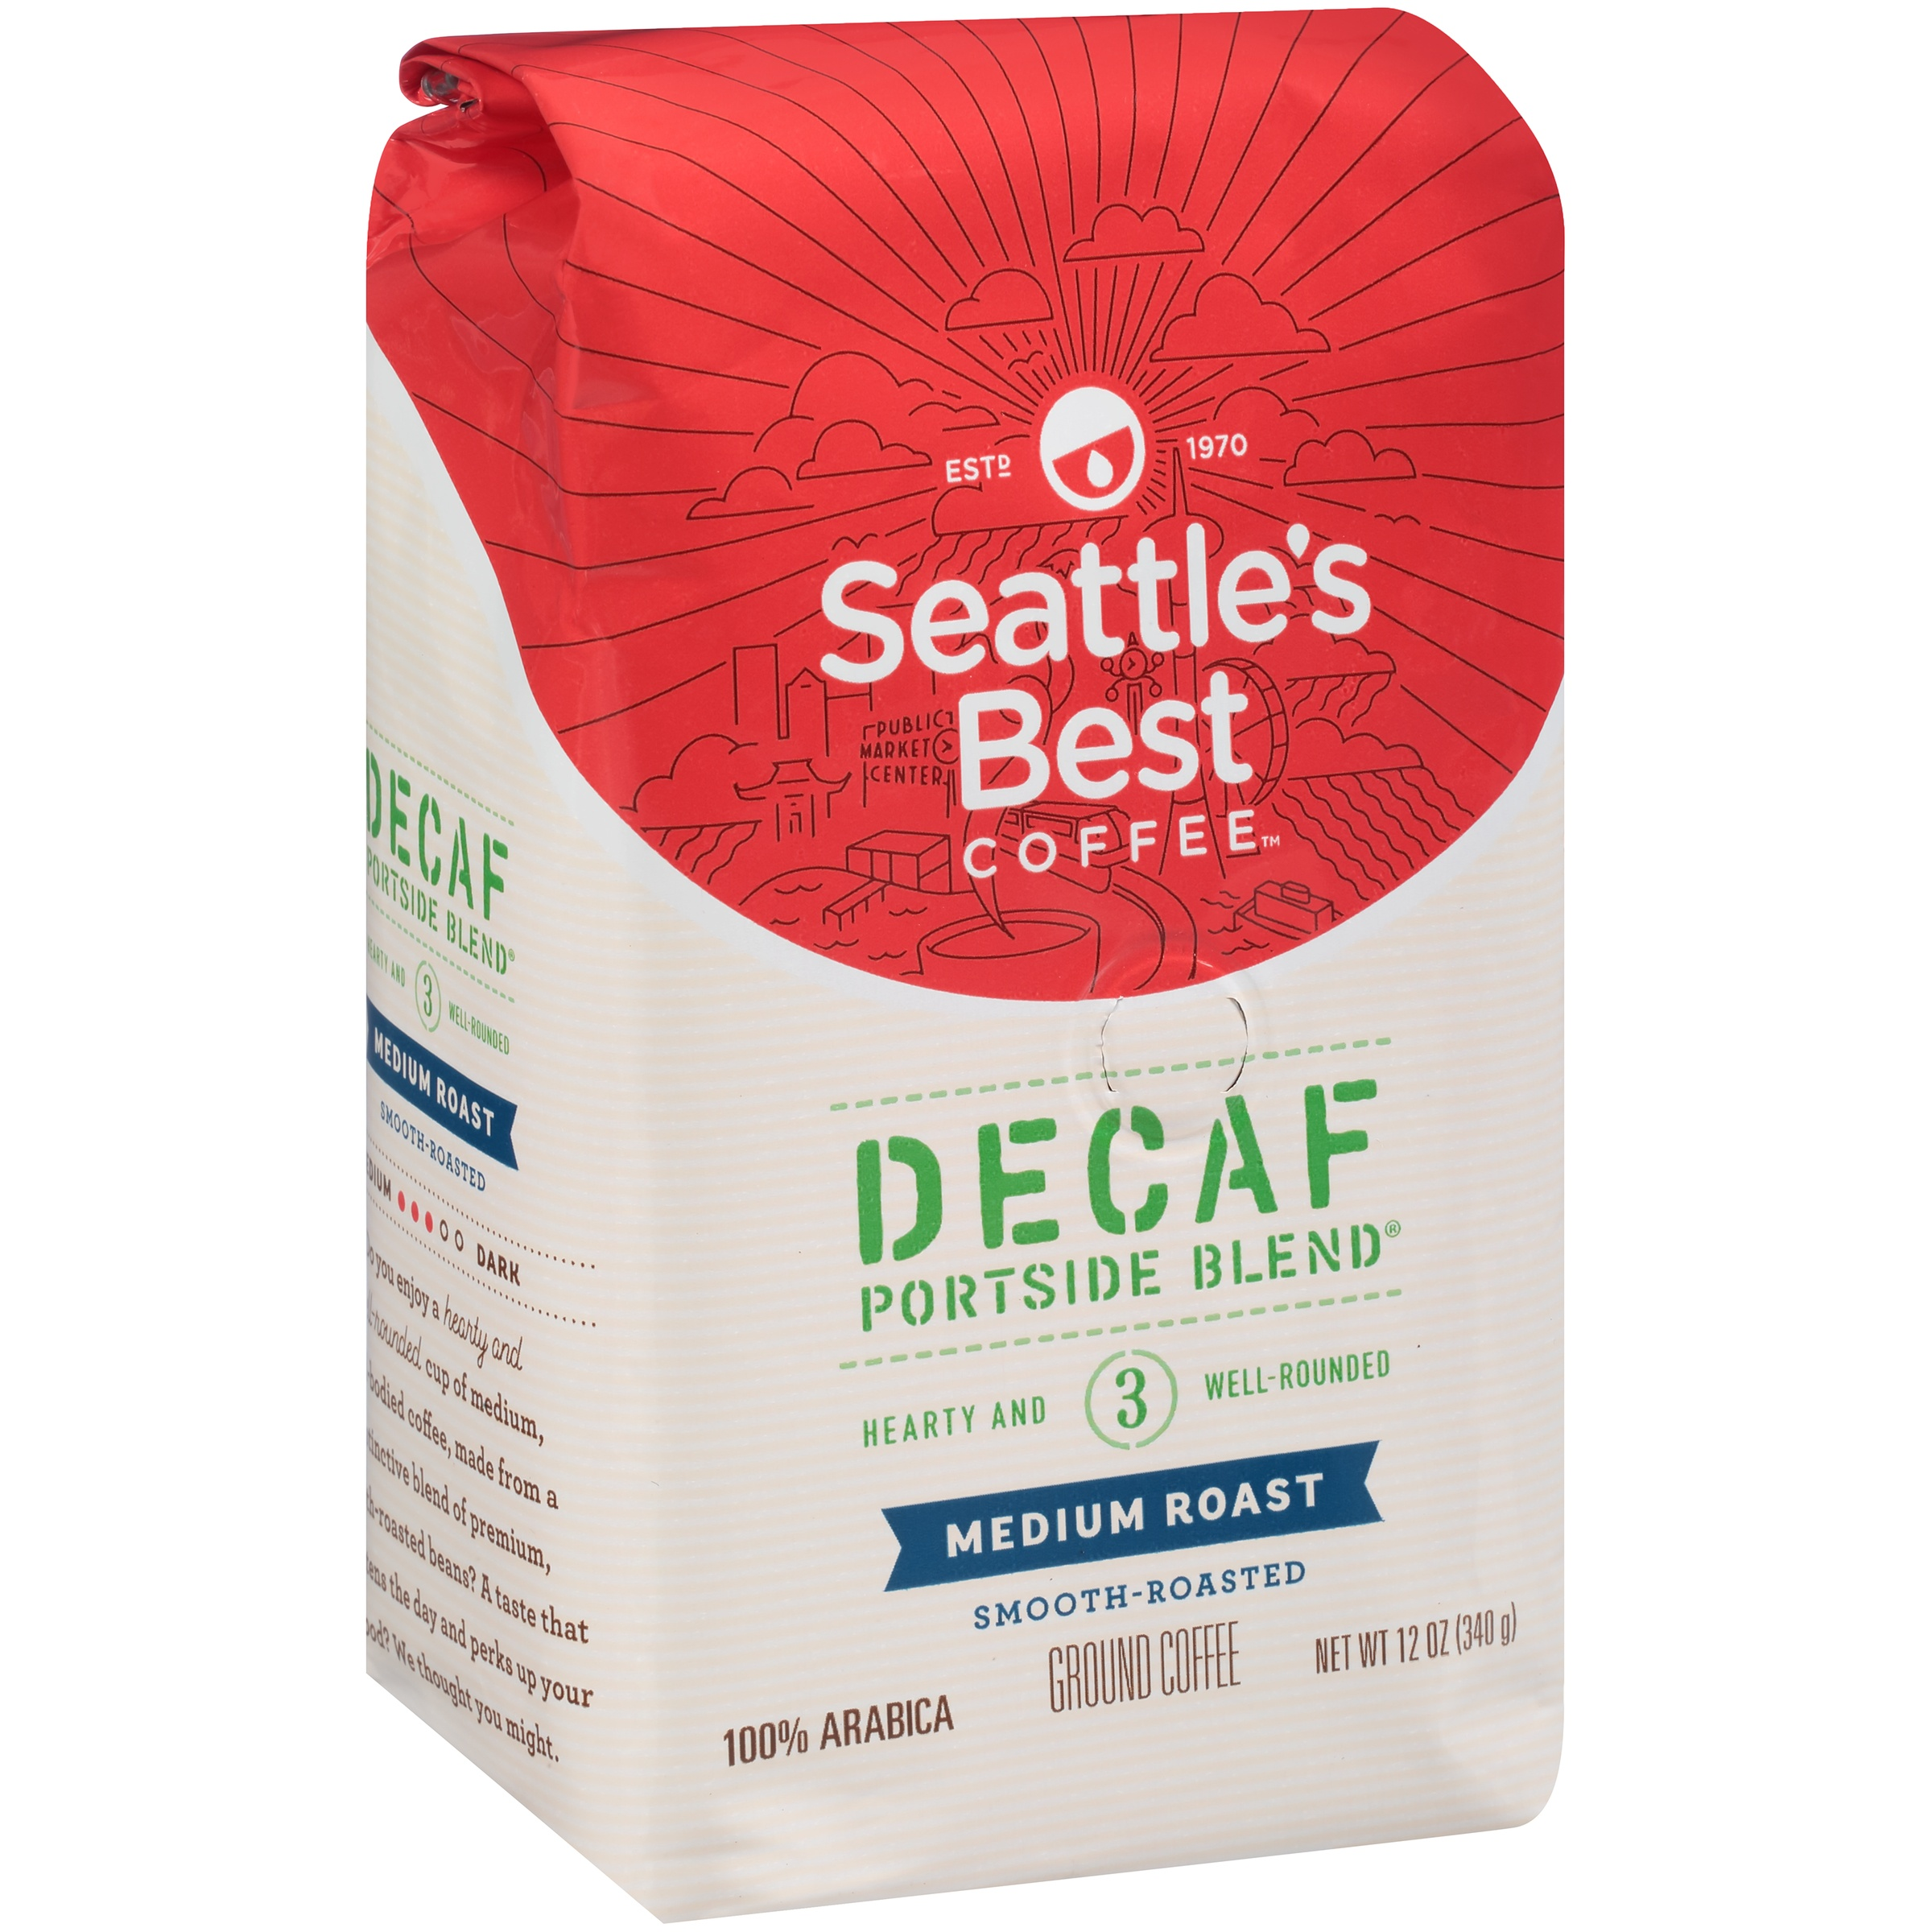 Seattle's Best Coffee Medium & Balanced Decaf Signature Blend No. 3 Ground Coffee 12 oz. Bag